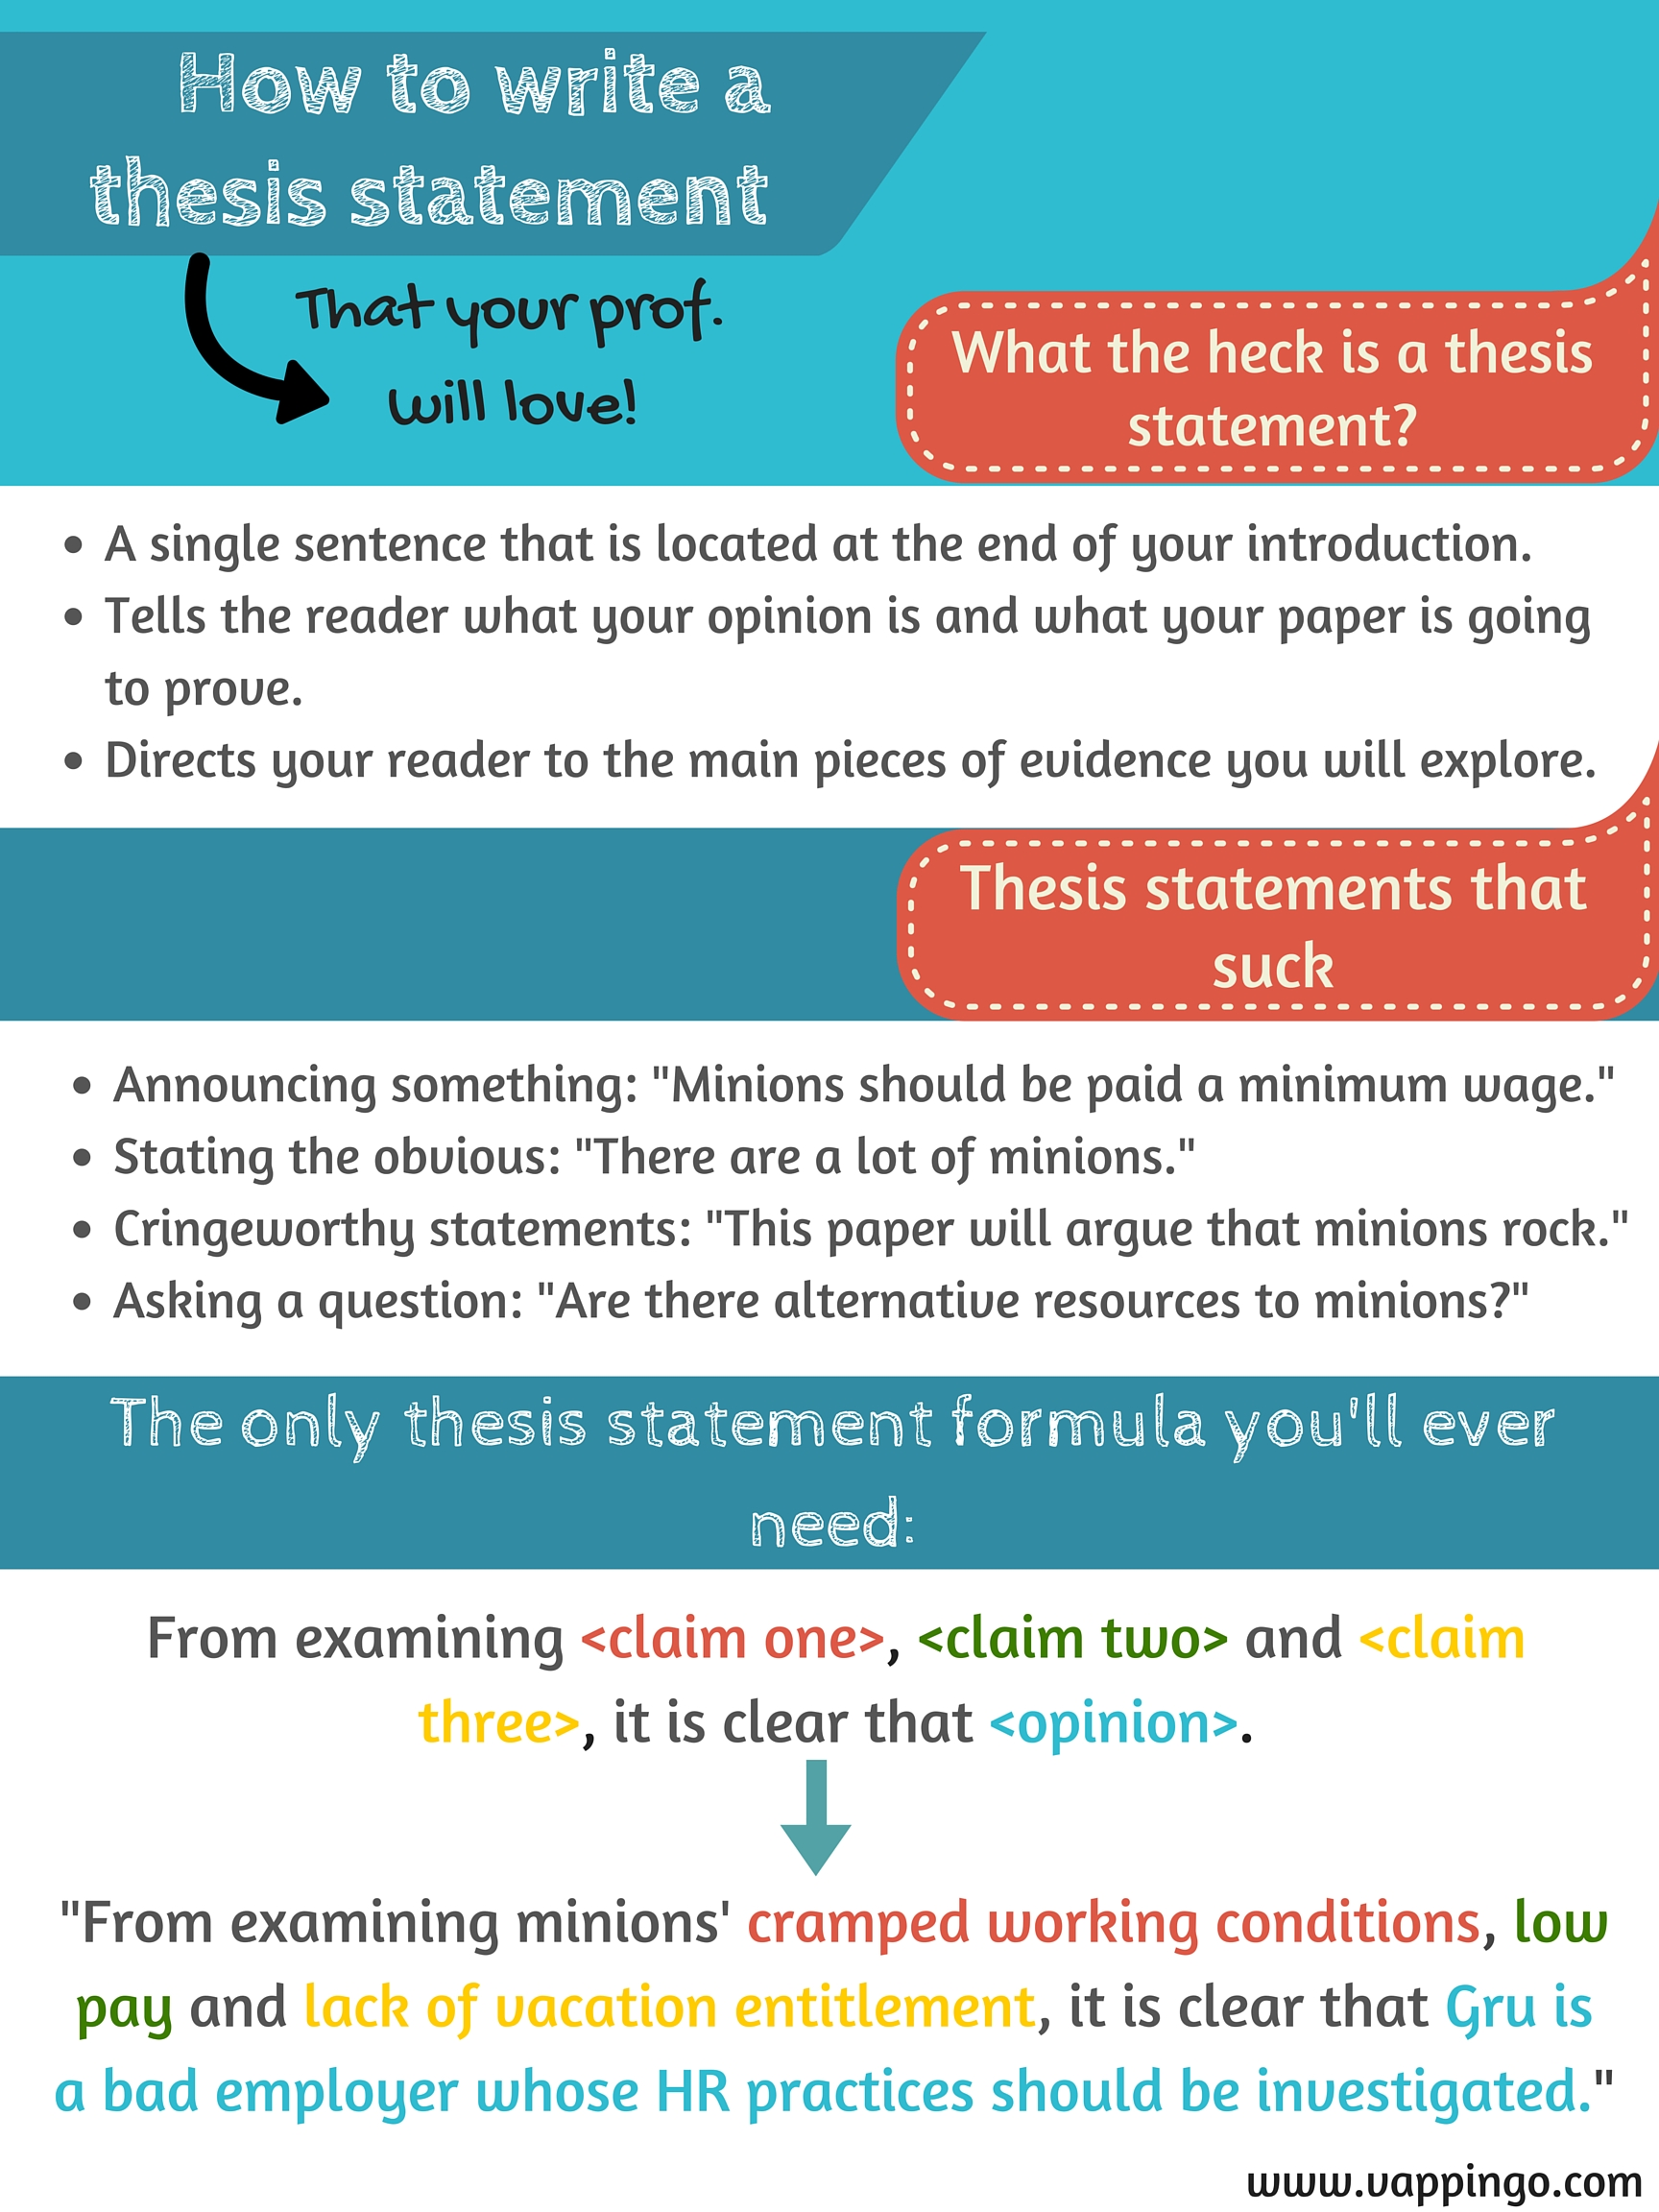 013 What Is Thesis Statement In An Essay Poster Fascinating A The Purpose Of Argumentative Informative Full